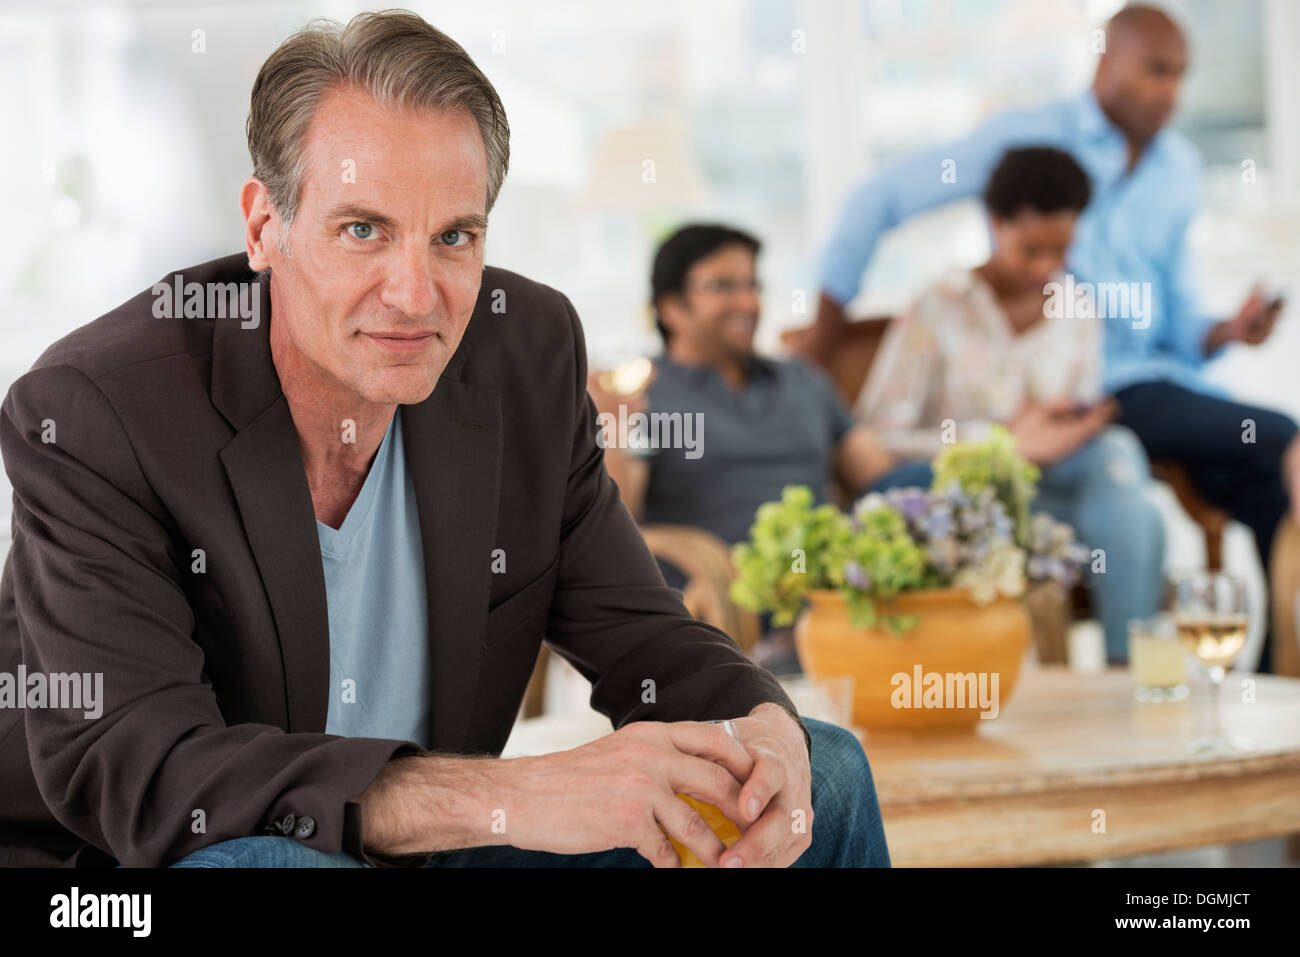 Office event. A man seated away from the group. - Stock Image